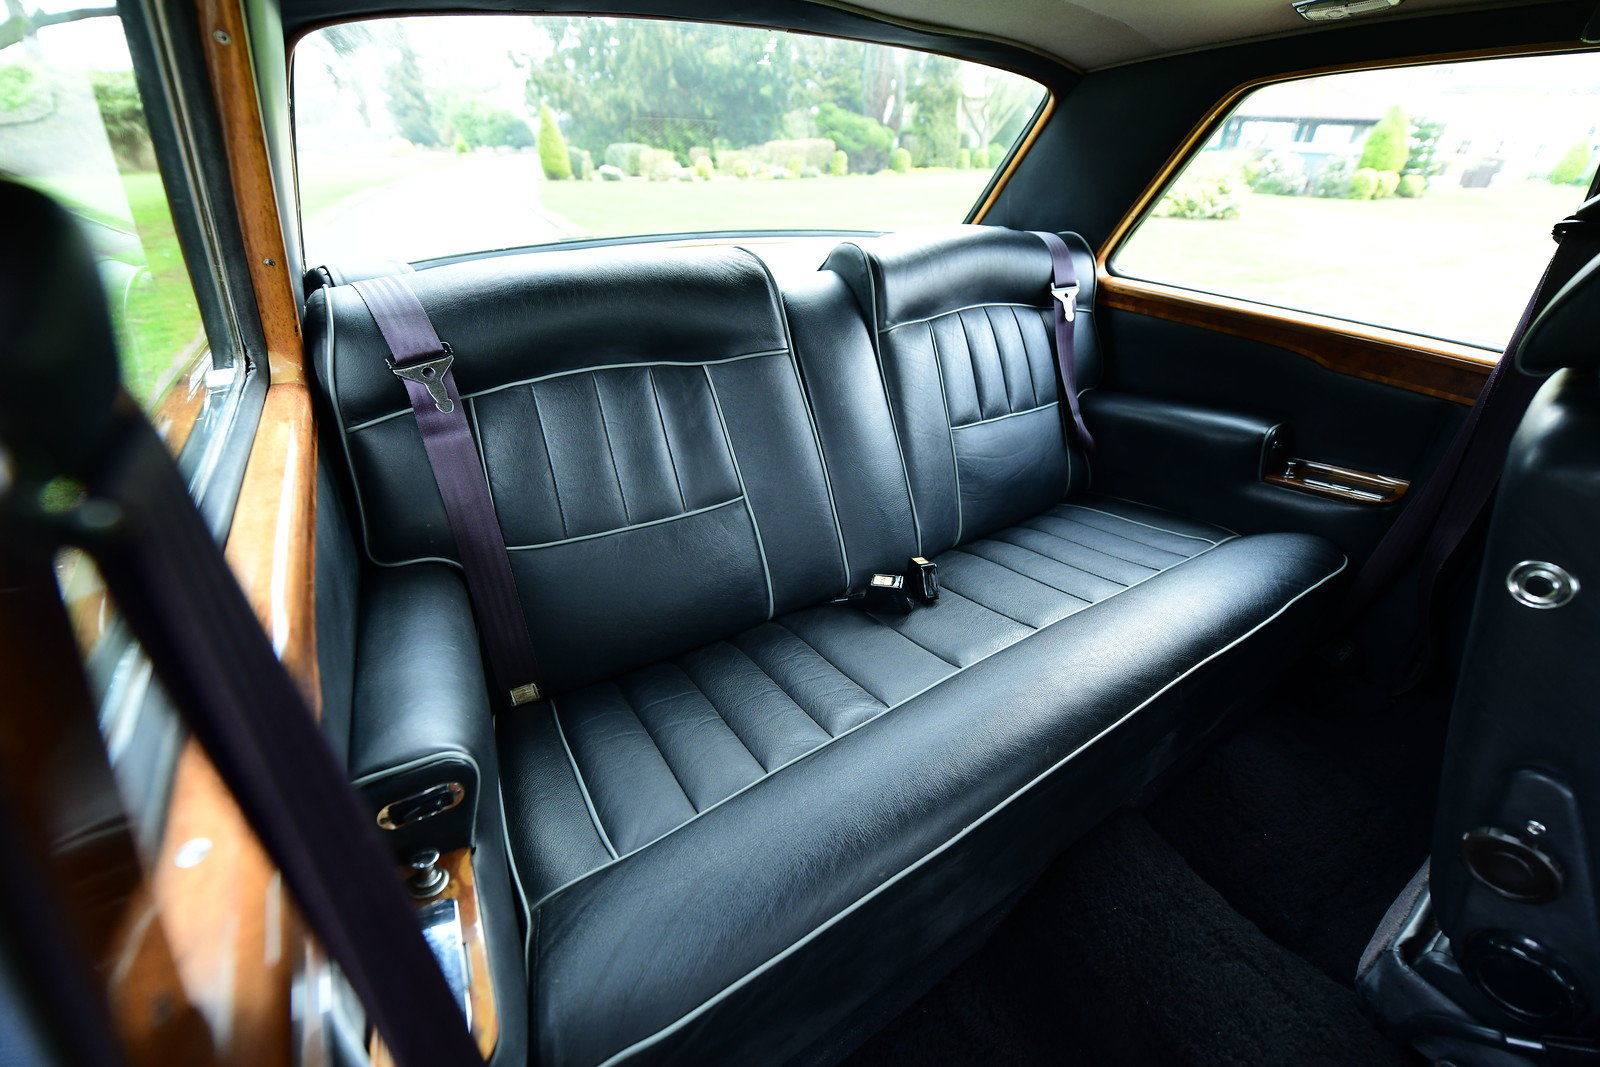 1976 Rolls Royce Corniche II Coupe LHD SOLD (picture 5 of 6)